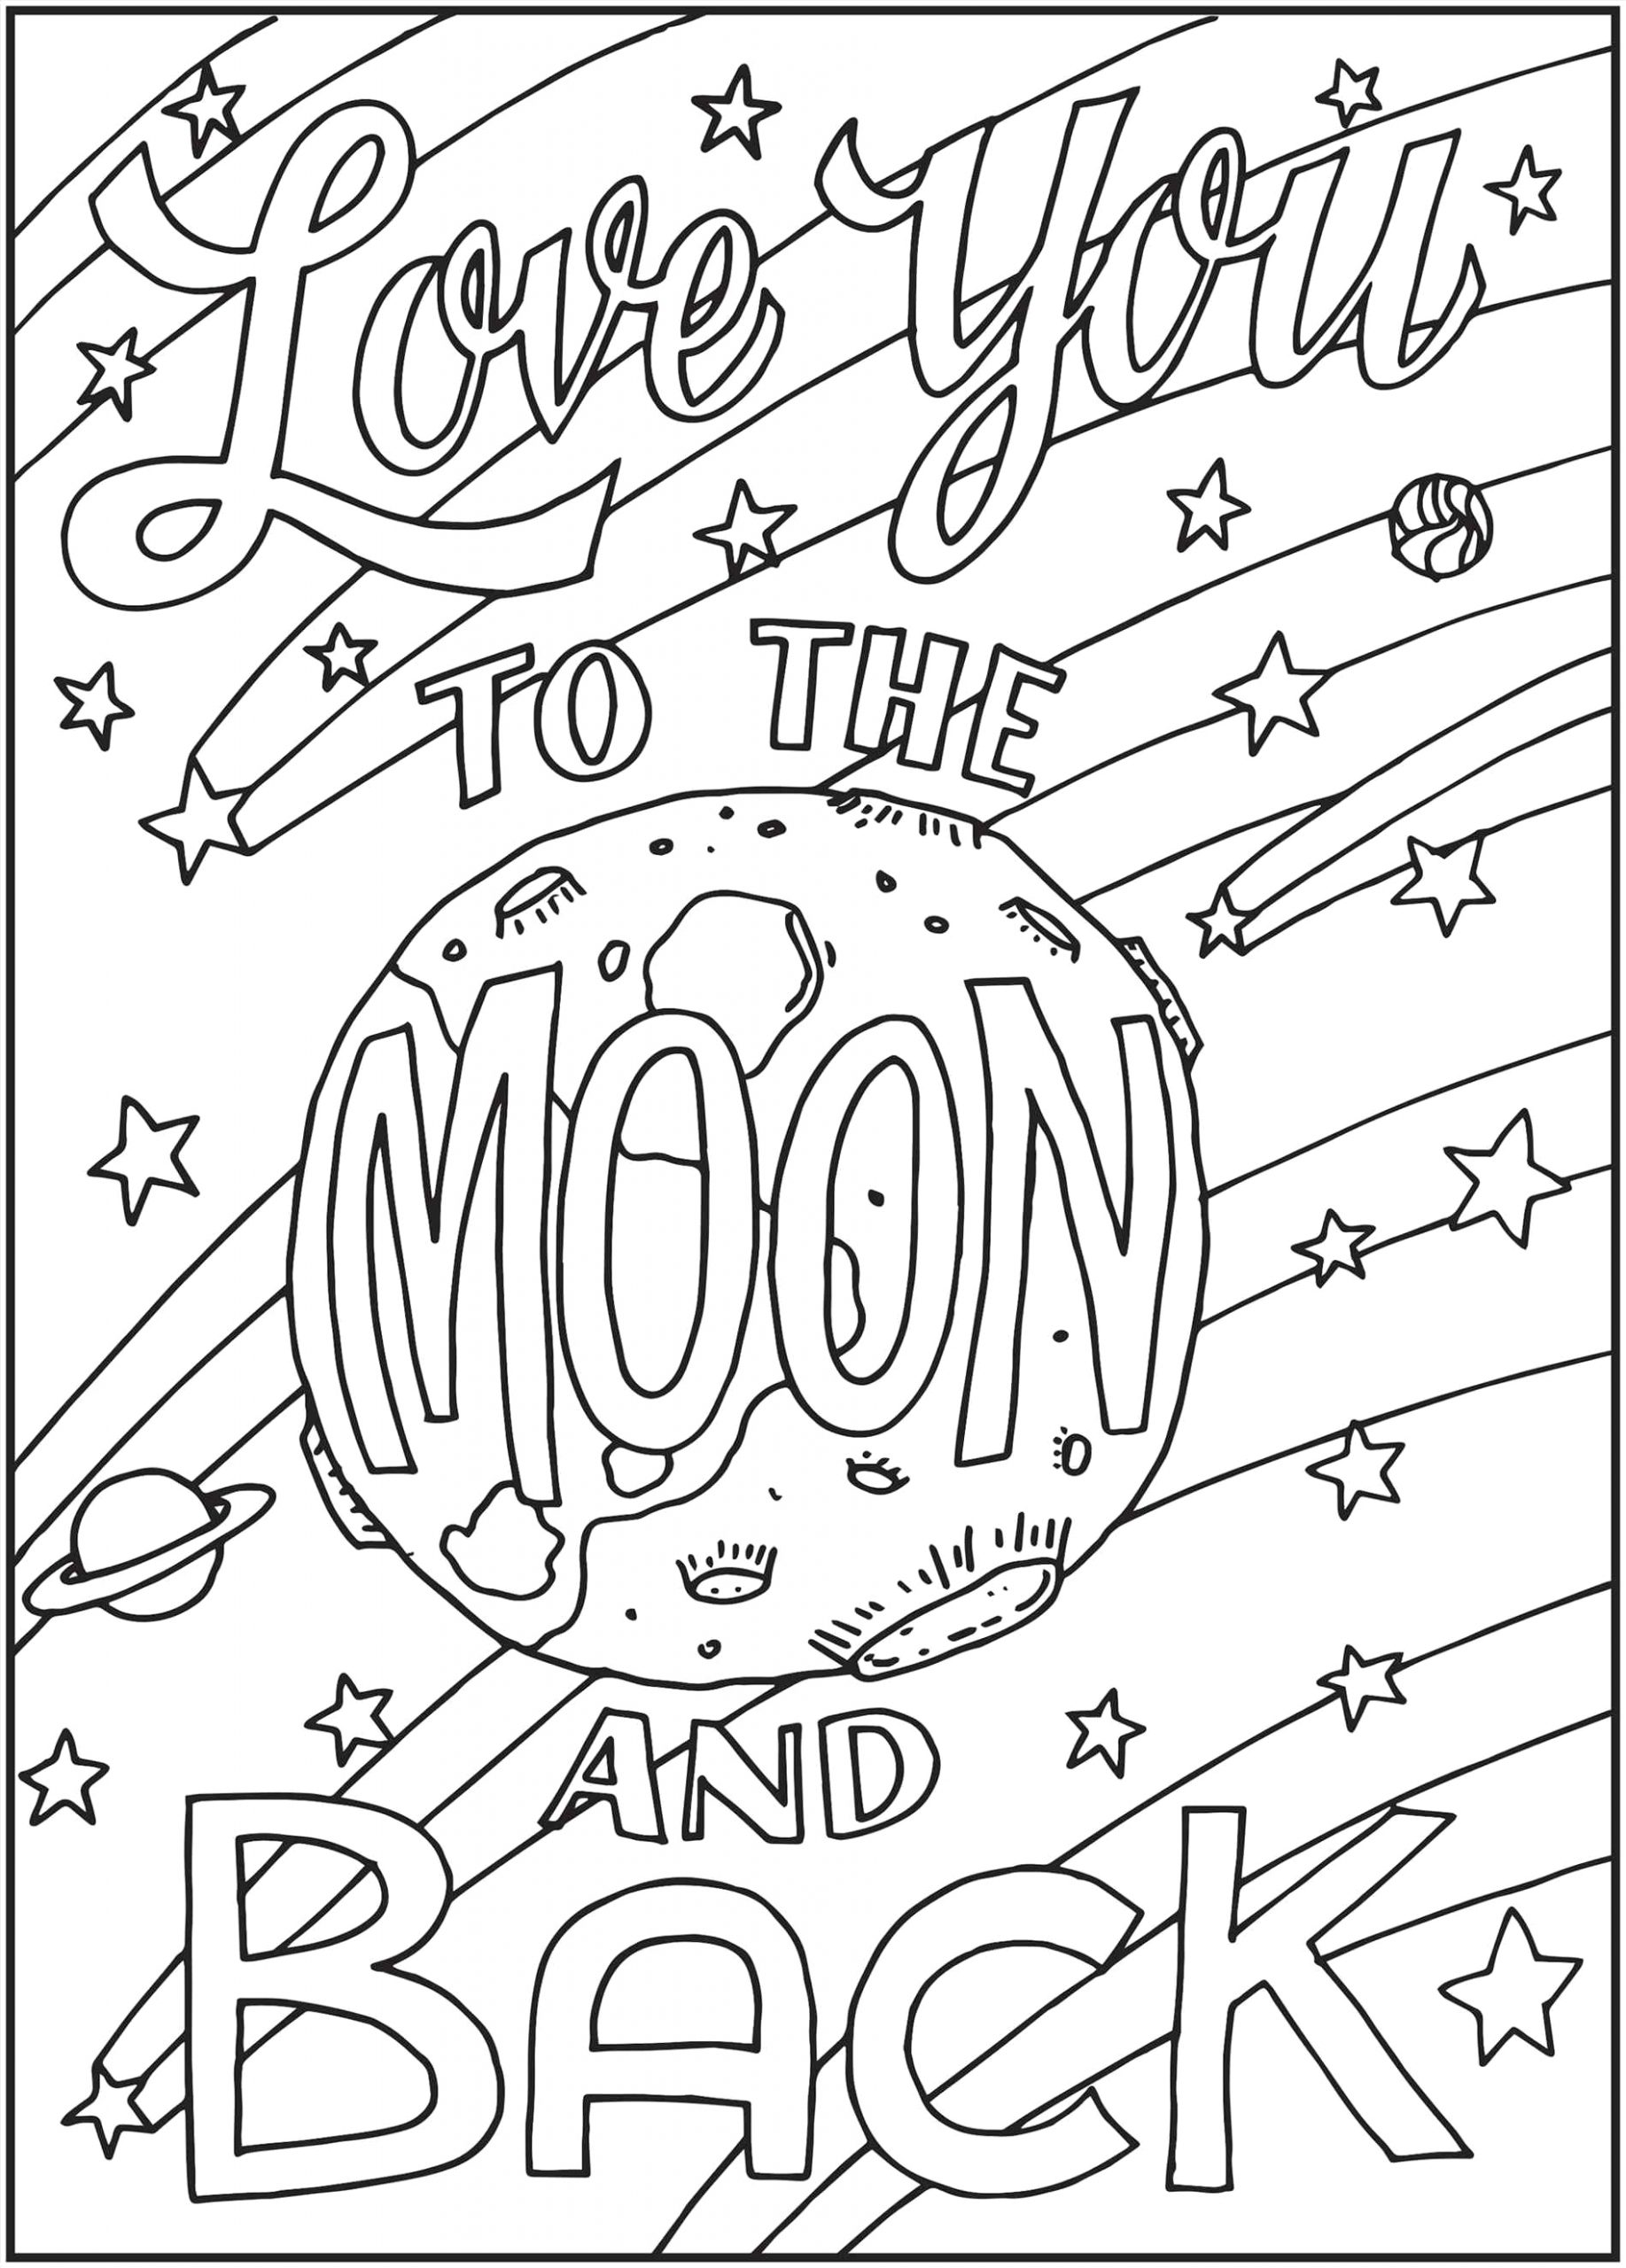 Love You to the Moon and Back Coloring Page Pnterest Books Best I Love You to the Moon and Back